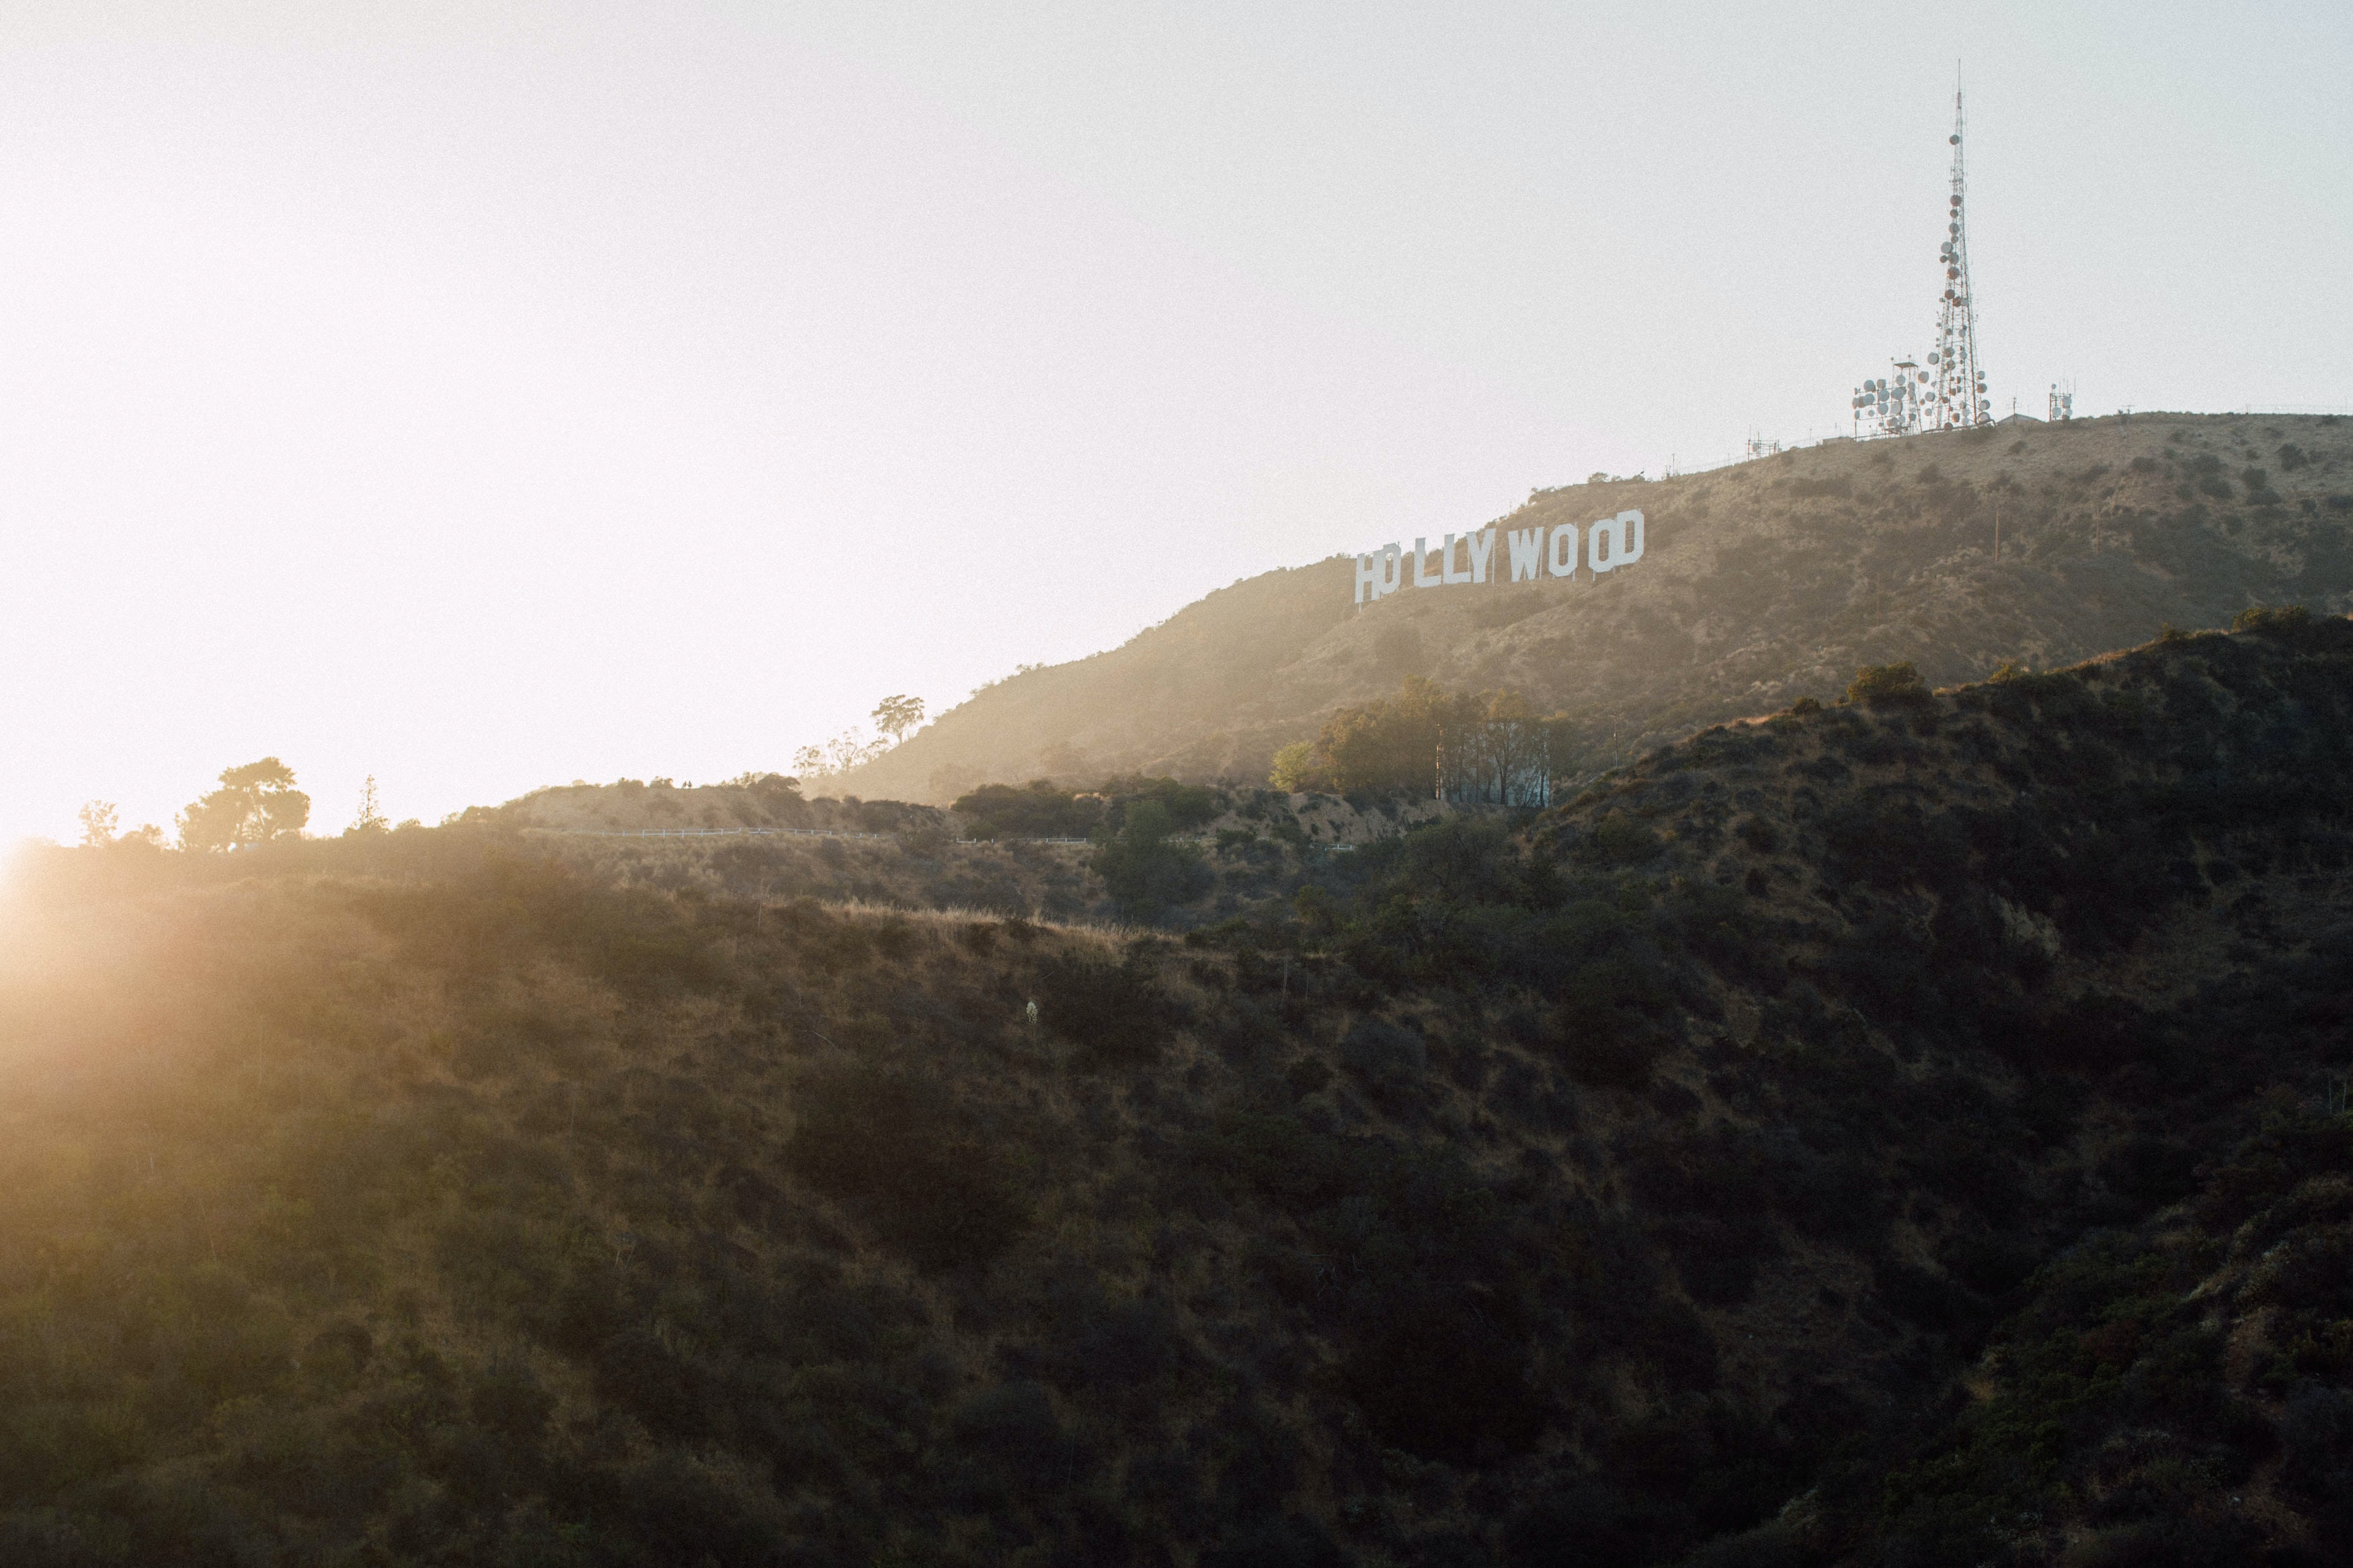 Sun shine on the Hollywood sign near a hillside in L.A.